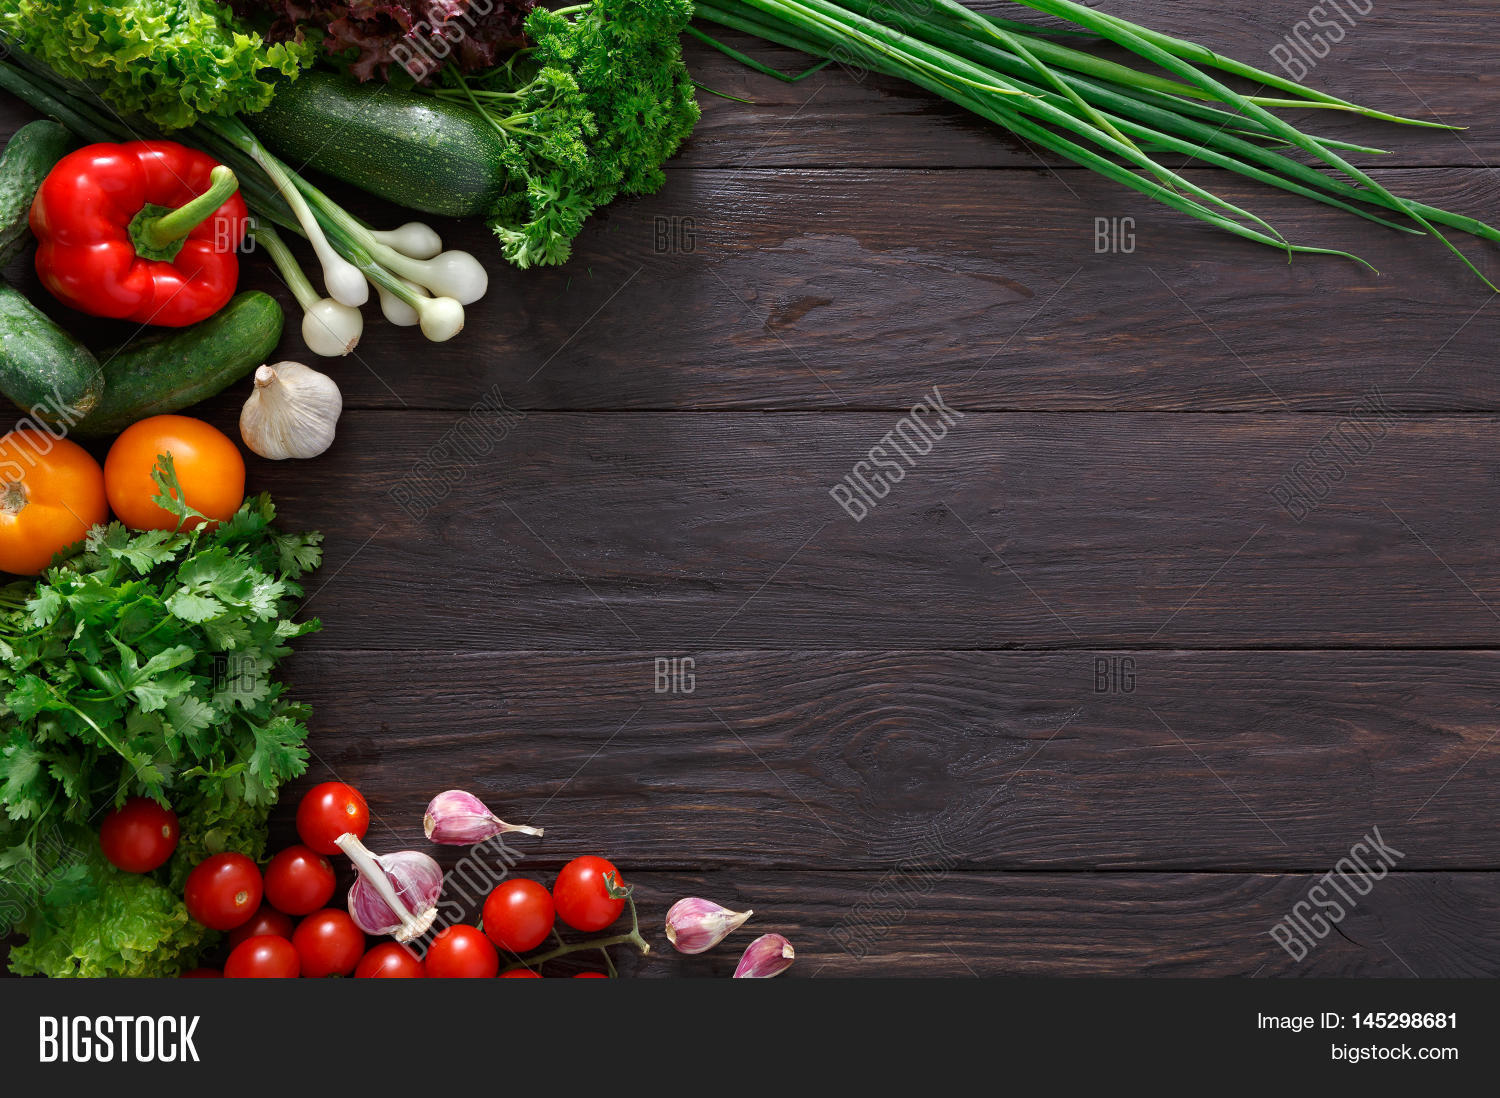 Border fresh organic vegetables on image photo bigstock for Cuisine wooden